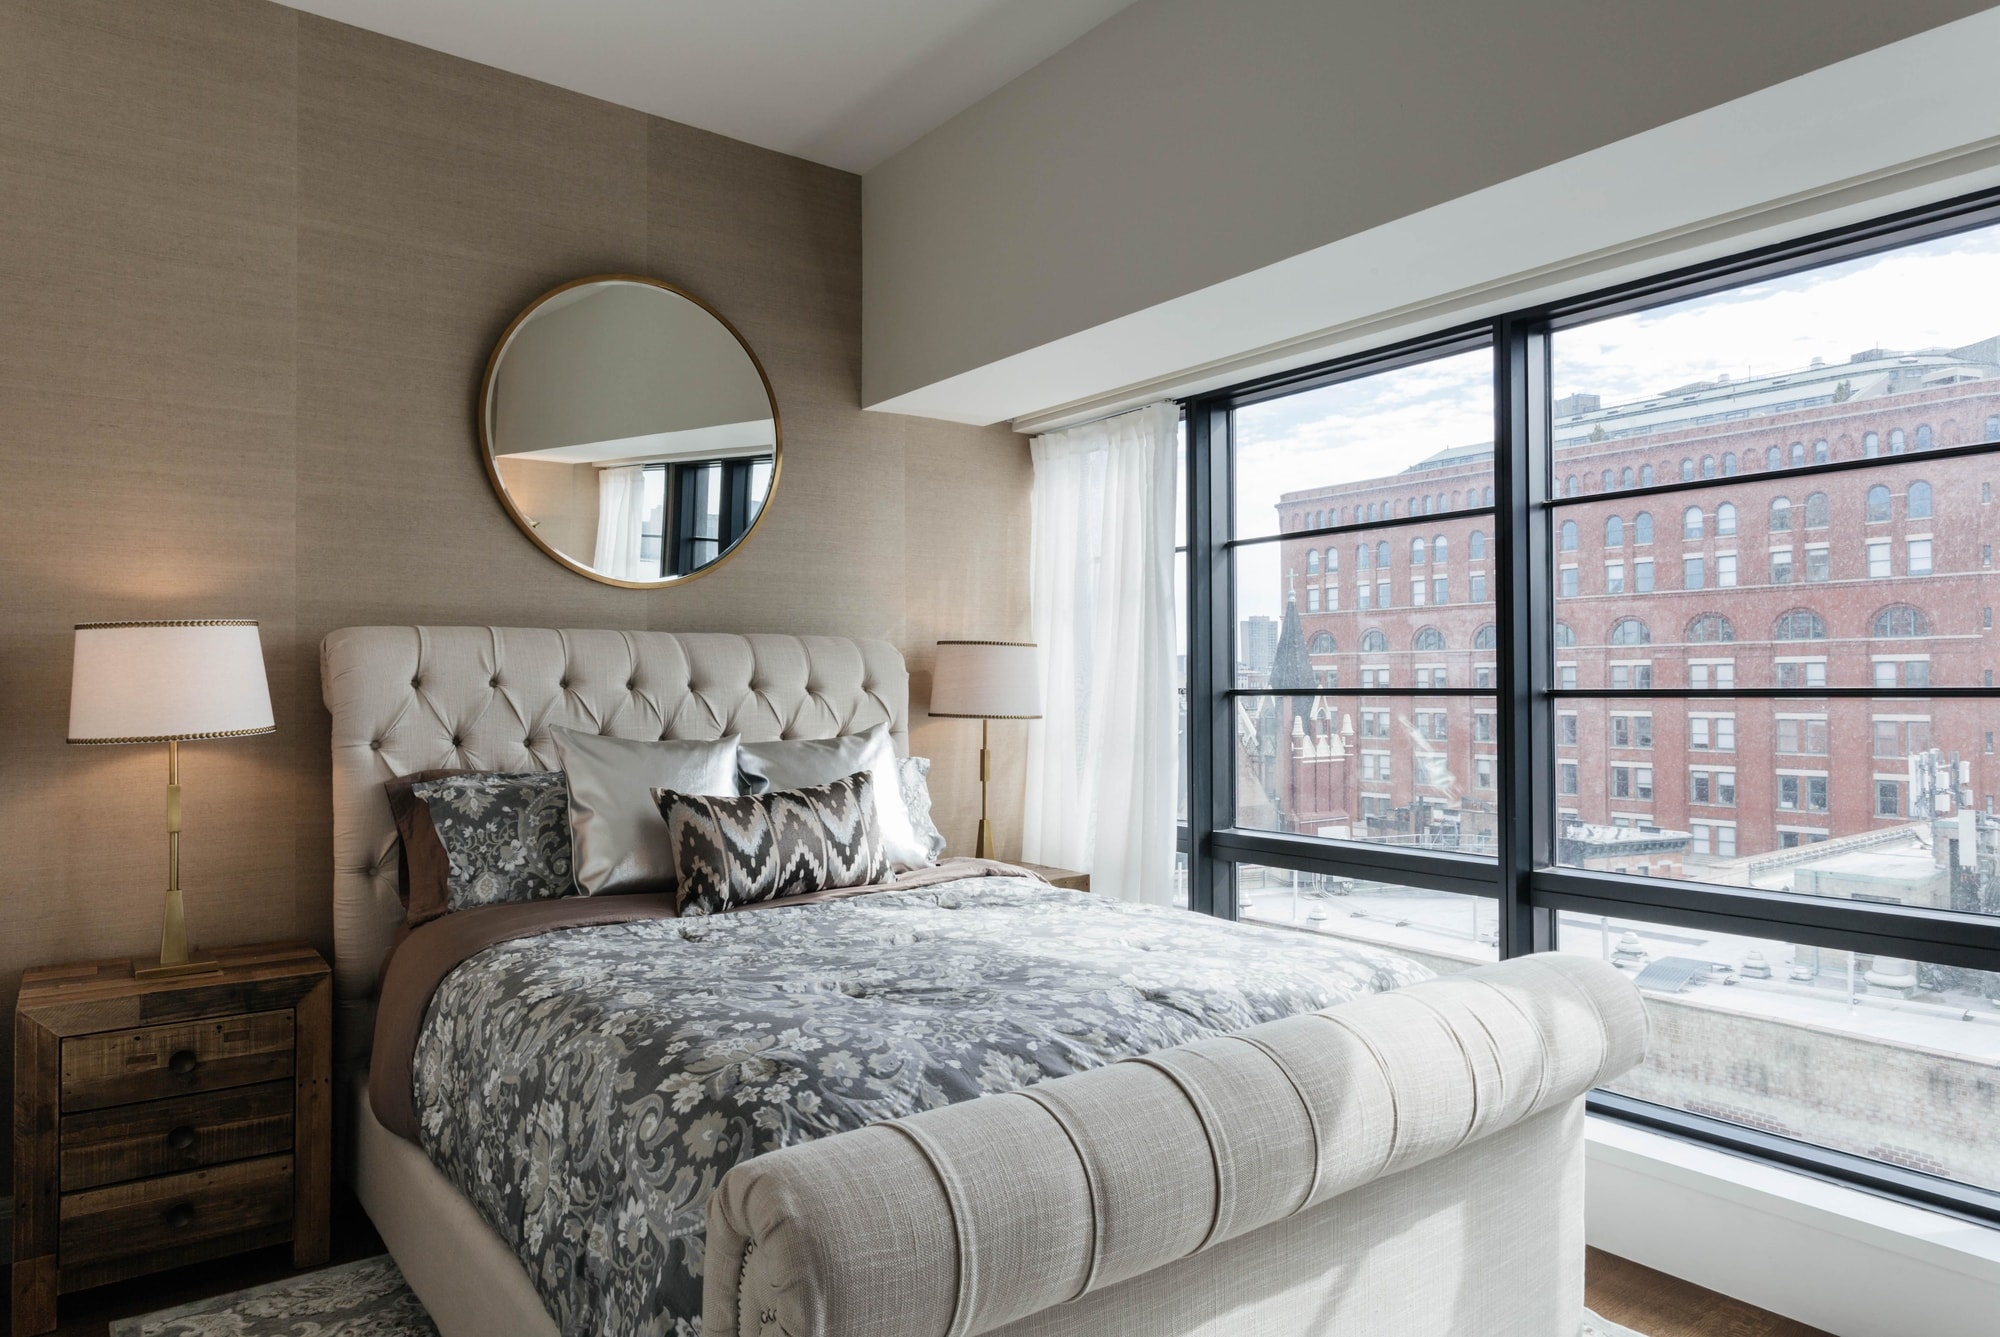 Bedroom with circular mirror hanging above bed